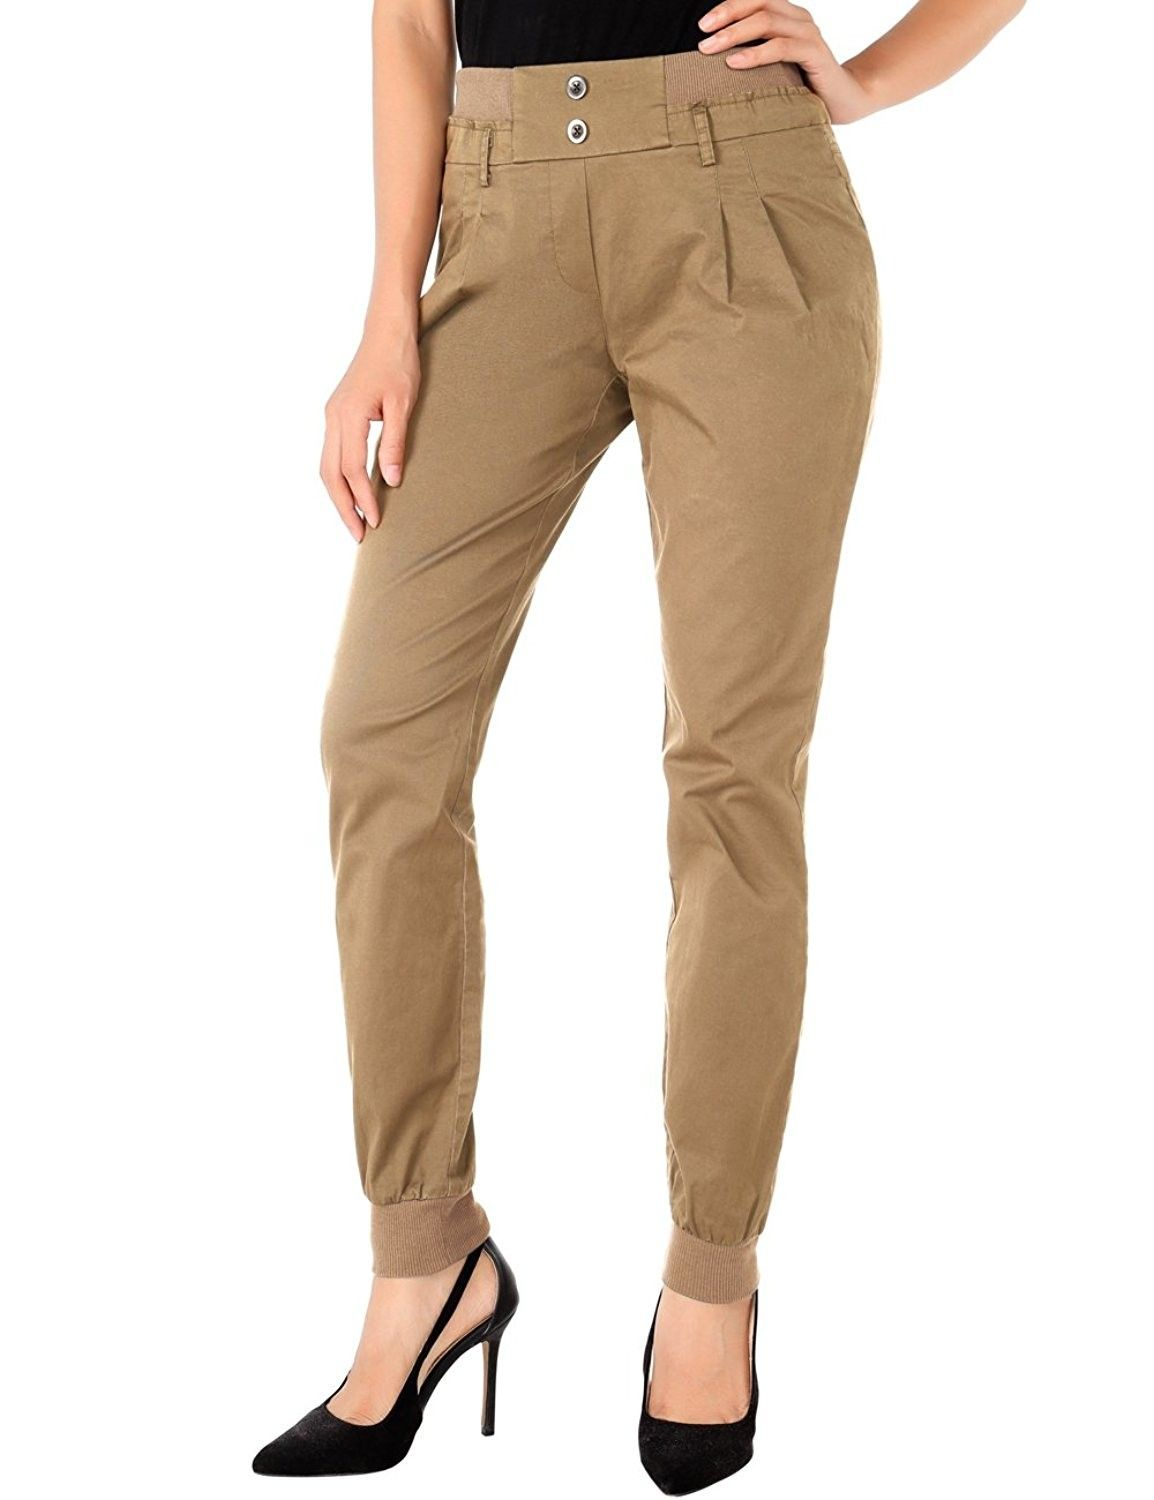 genuine elegant shoes the cheapest Slim Fit Womens Chino Pants Casual Twill Stretch Pant ...